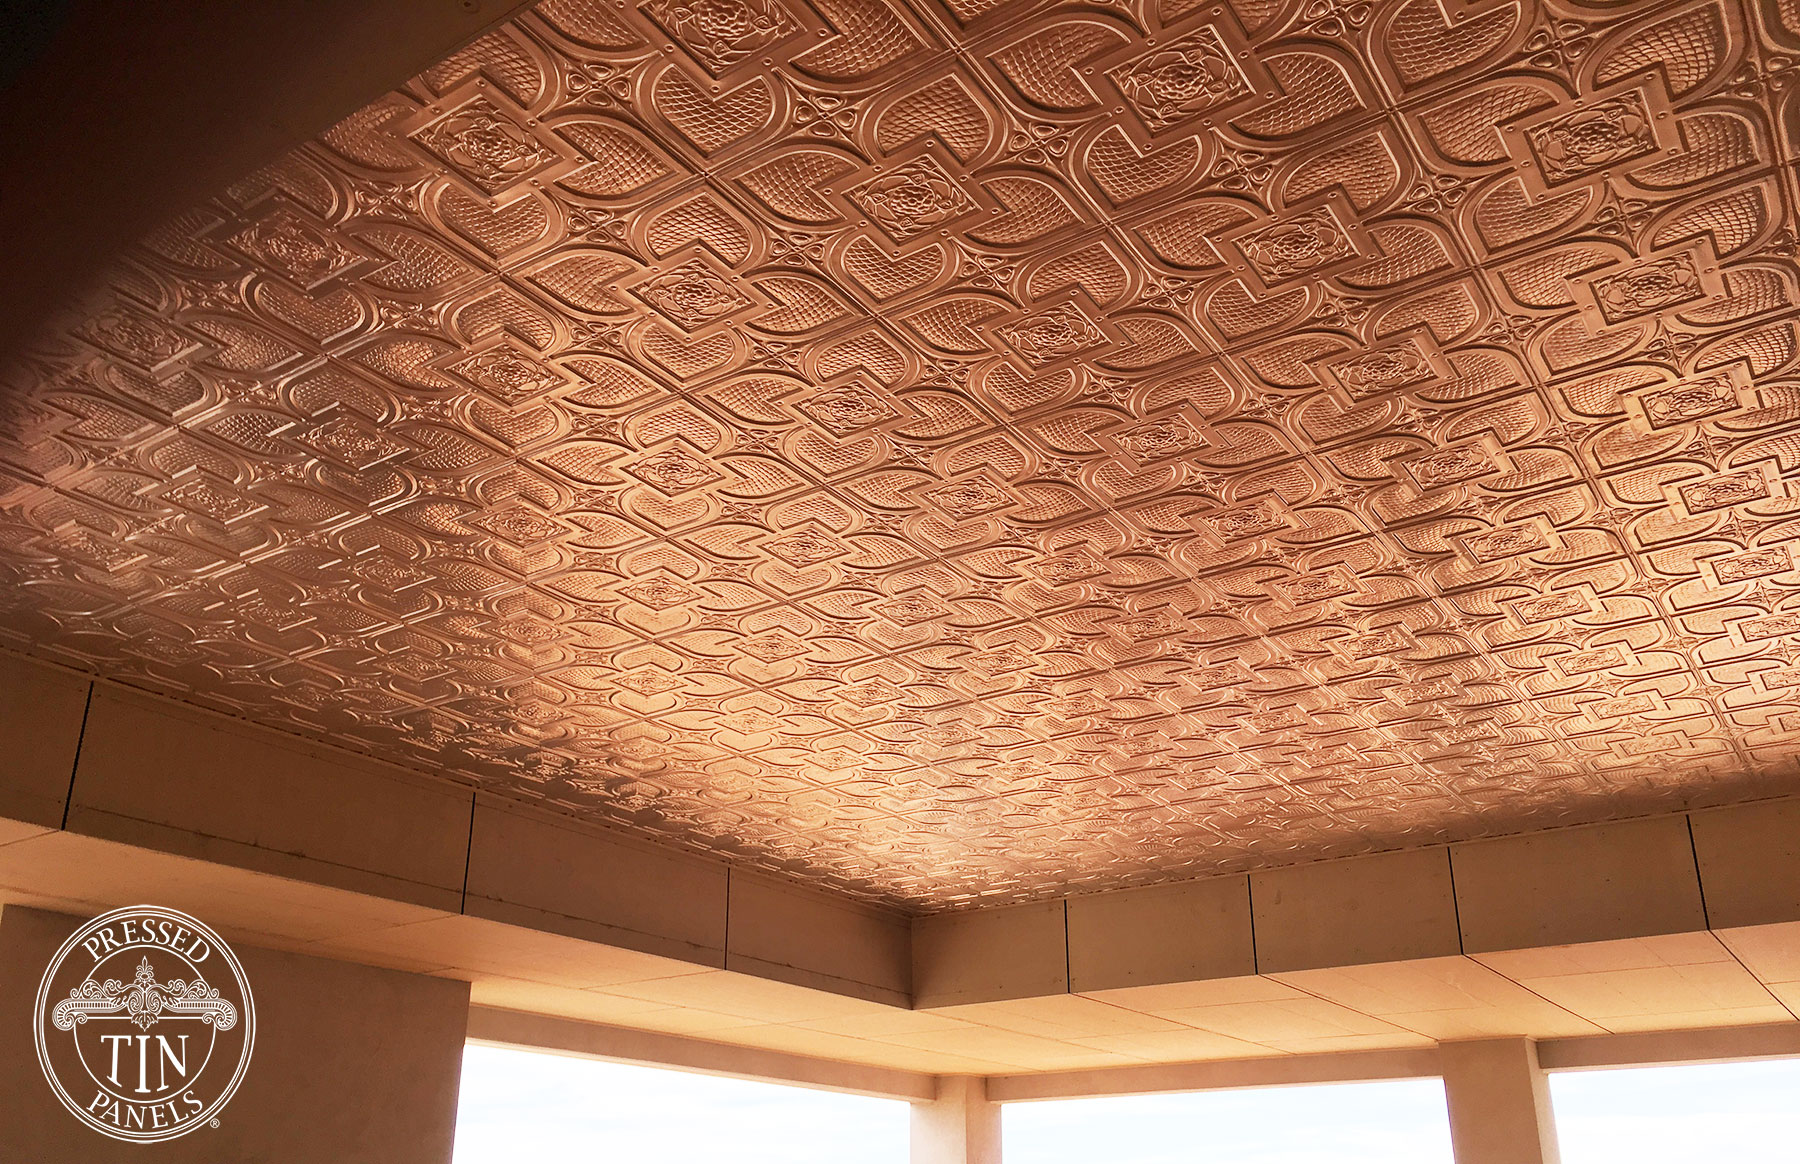 Pressed Tin Panels Alexandria pattern installed on ceiling of outdoor area